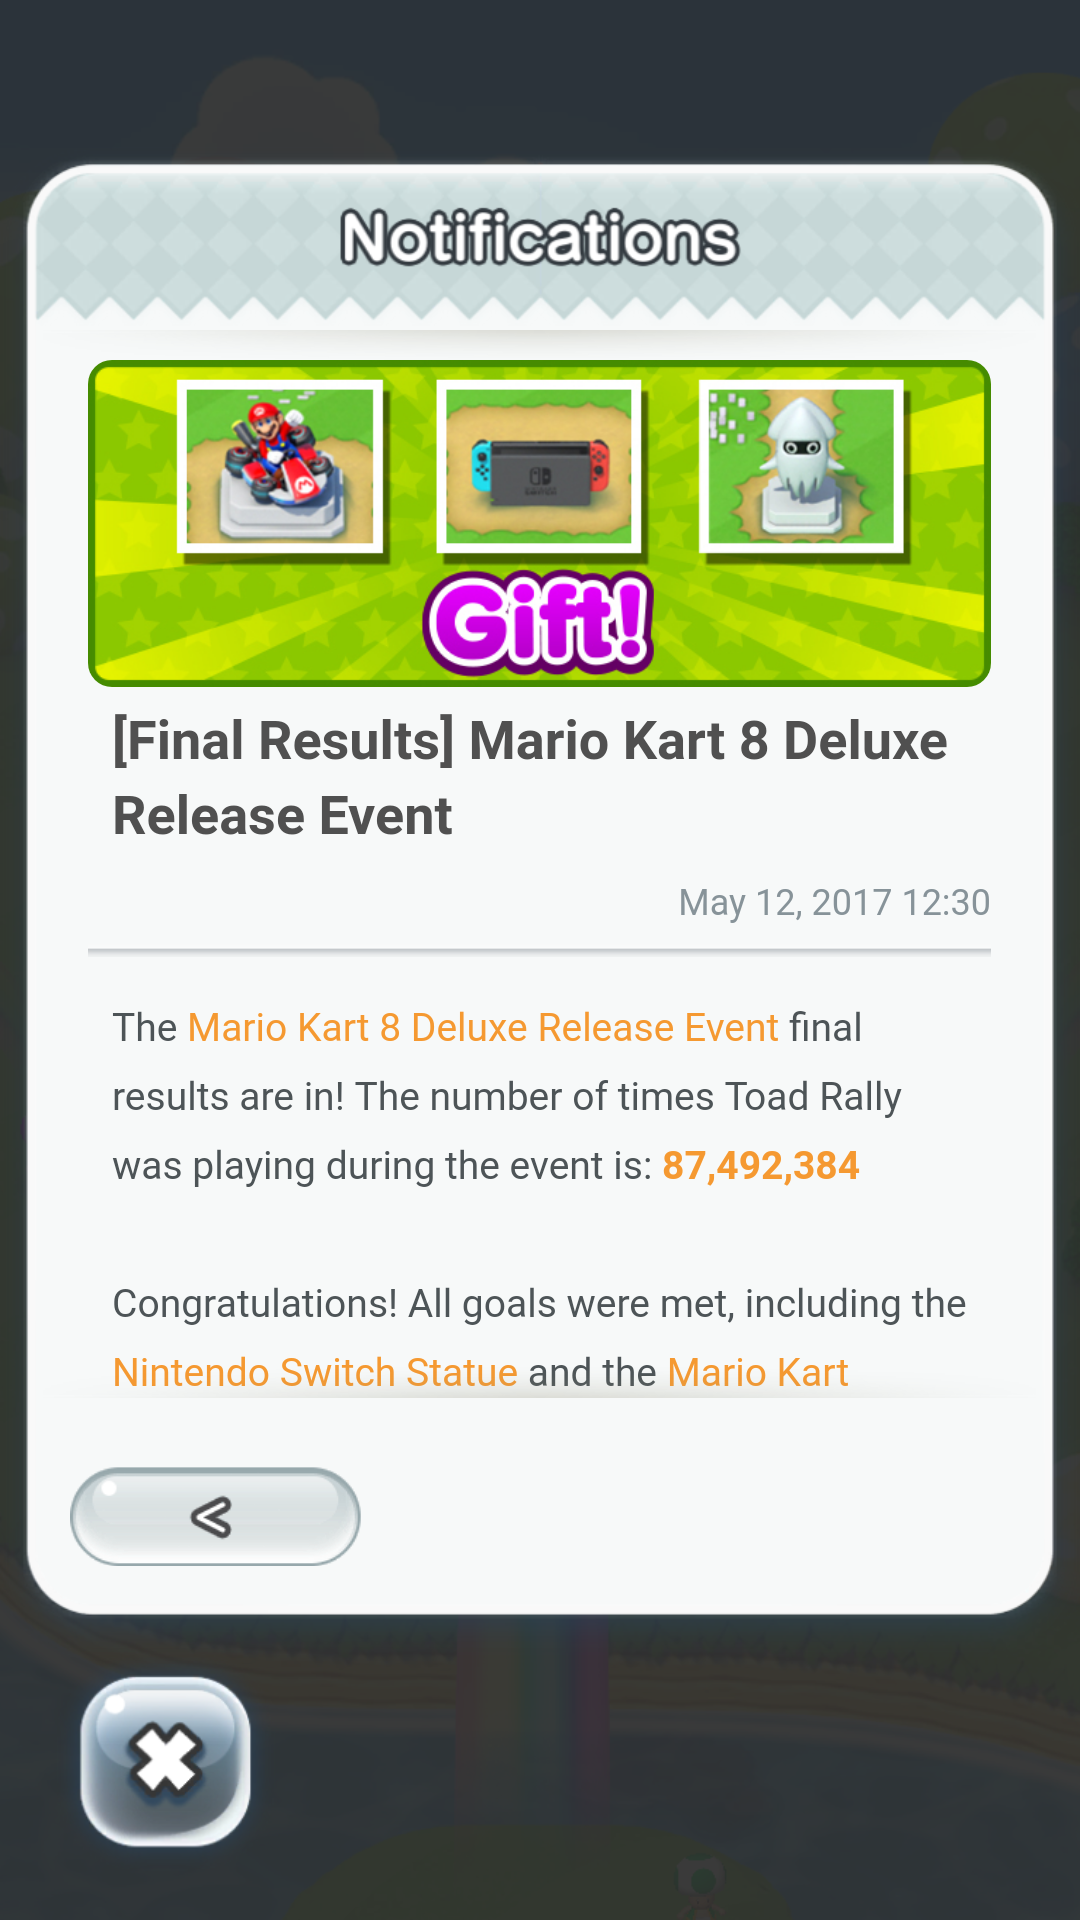 Notifications Pop-up after event expiry